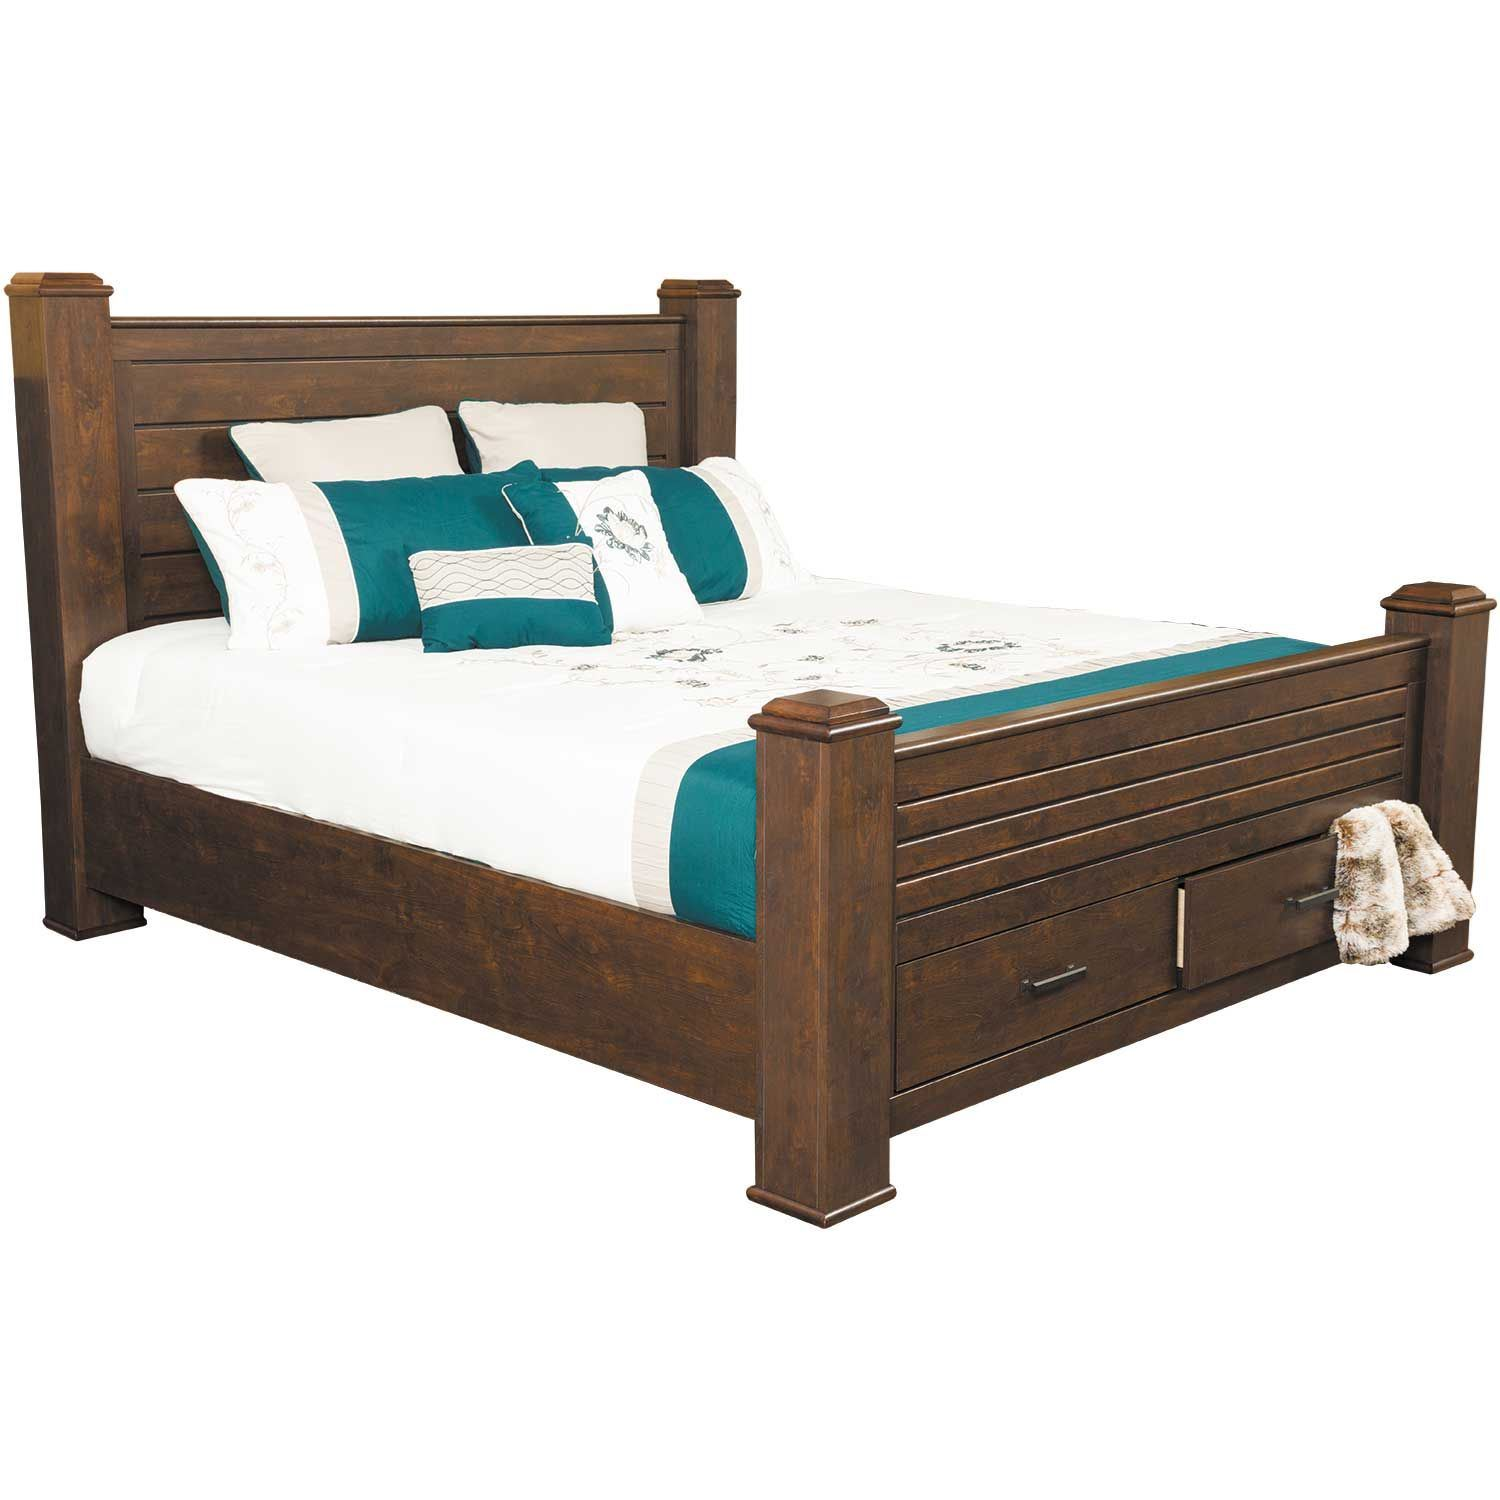 Lifestyle Bedroom Furniture Coco King Storage Bed C6413a Gtawx9k94gxj Lifestyle Furniture